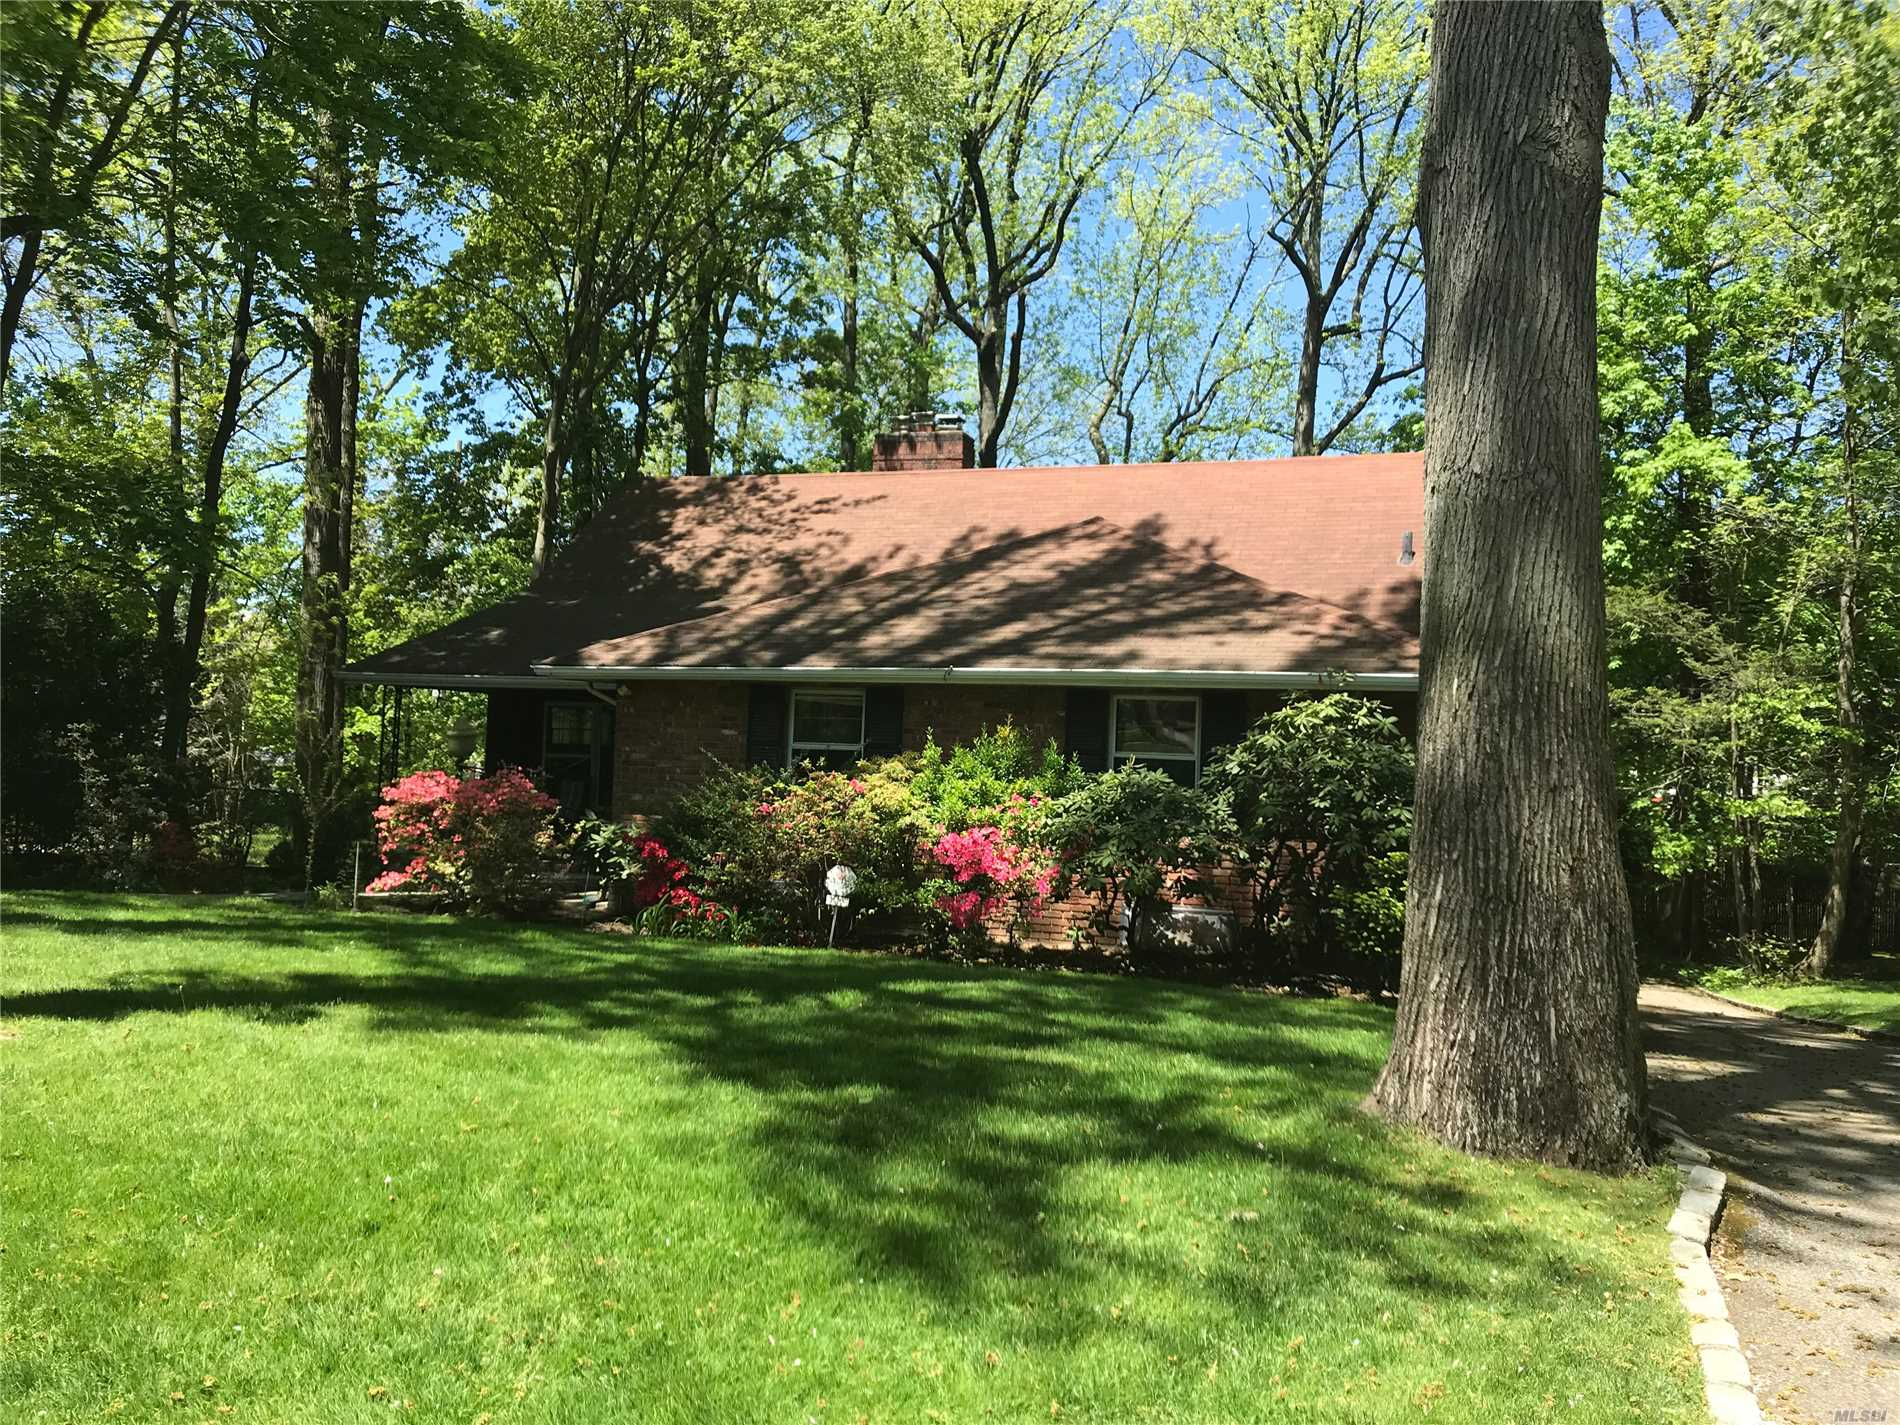 Wonderful Family Home in Thomaston. 4 Blocks to LIRR, Shops and Town. Room for Expansion. Updated Oil Burner and CAC. Fireplace in LR and Kitchen. Underground Sprinklers in the Front. Large Deck off Kitchen. Huge Finished Basement.